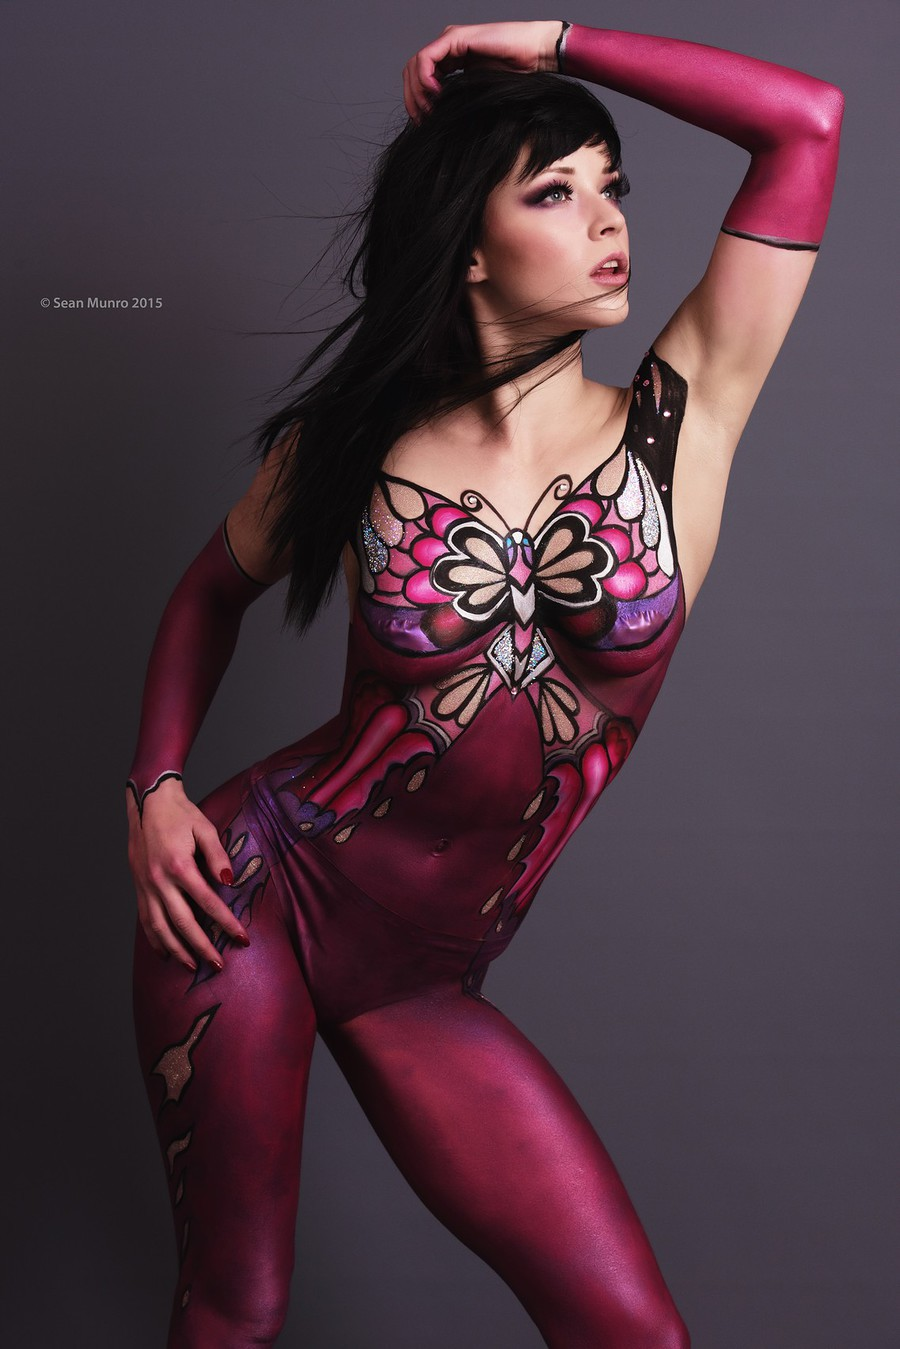 Butterfly -Catsuit Bodypainting / Photography by Sean Munro Photography, Model Evangeline, Makeup by pierangela manzetti, Taken at Sean Munro Photography, Artwork by pierangela manzetti / Uploaded 15th January 2016 @ 12:02 PM